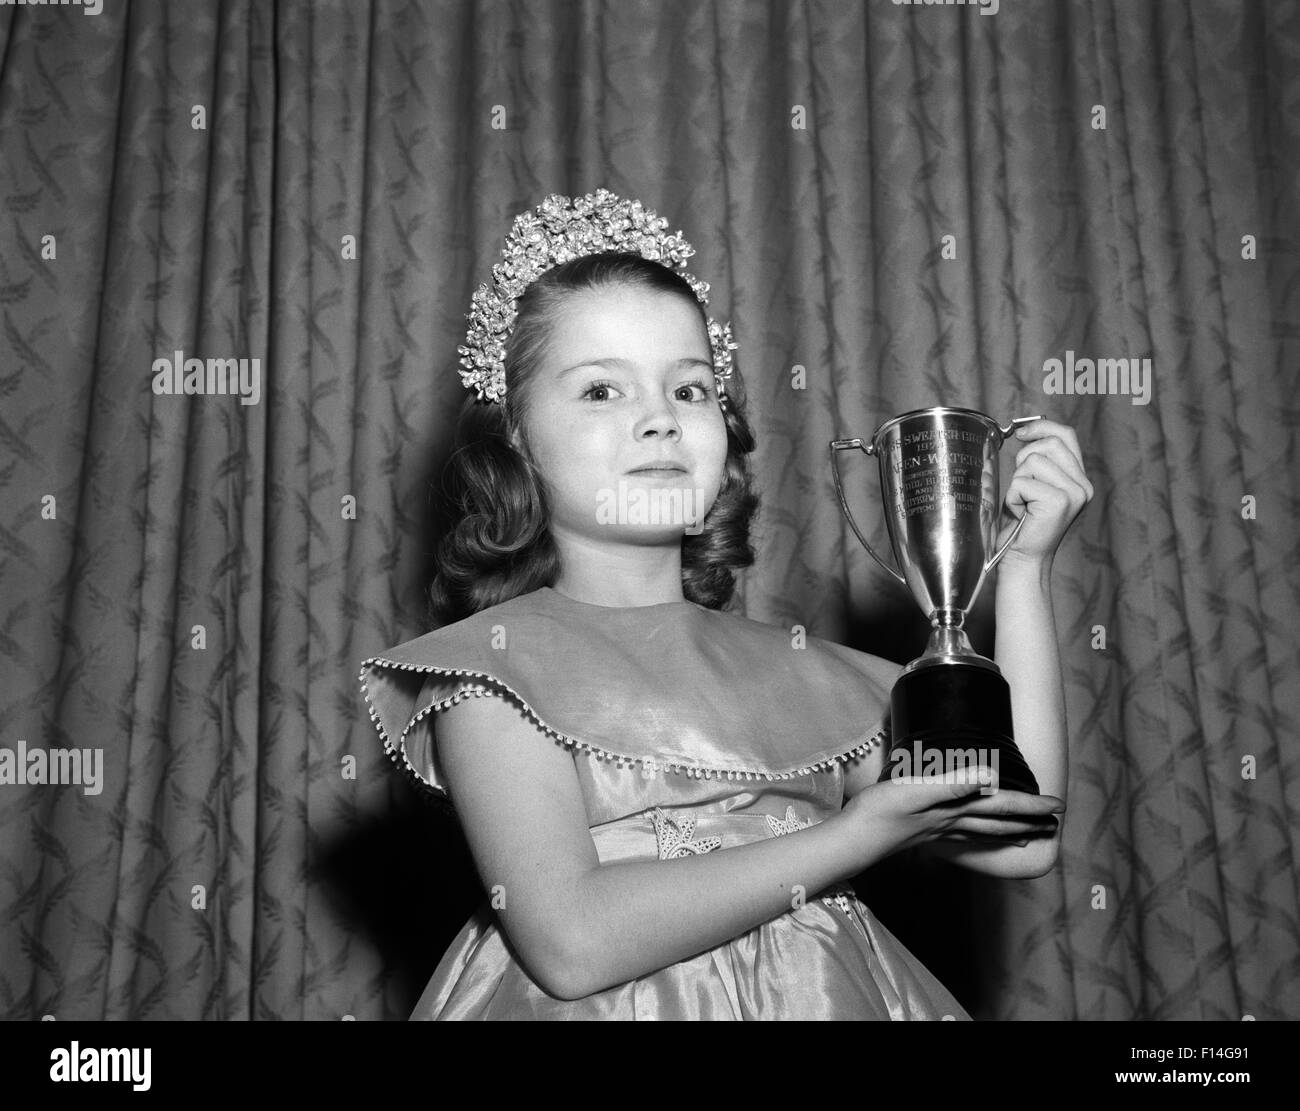 1950s 1960s YOUNG GIRL STANDING WITH TROPHY LOVING CUP WEARING TIARA PRETTY DRESS WINNER OF BEAUTY PAGEANT LOOKING Stock Photo